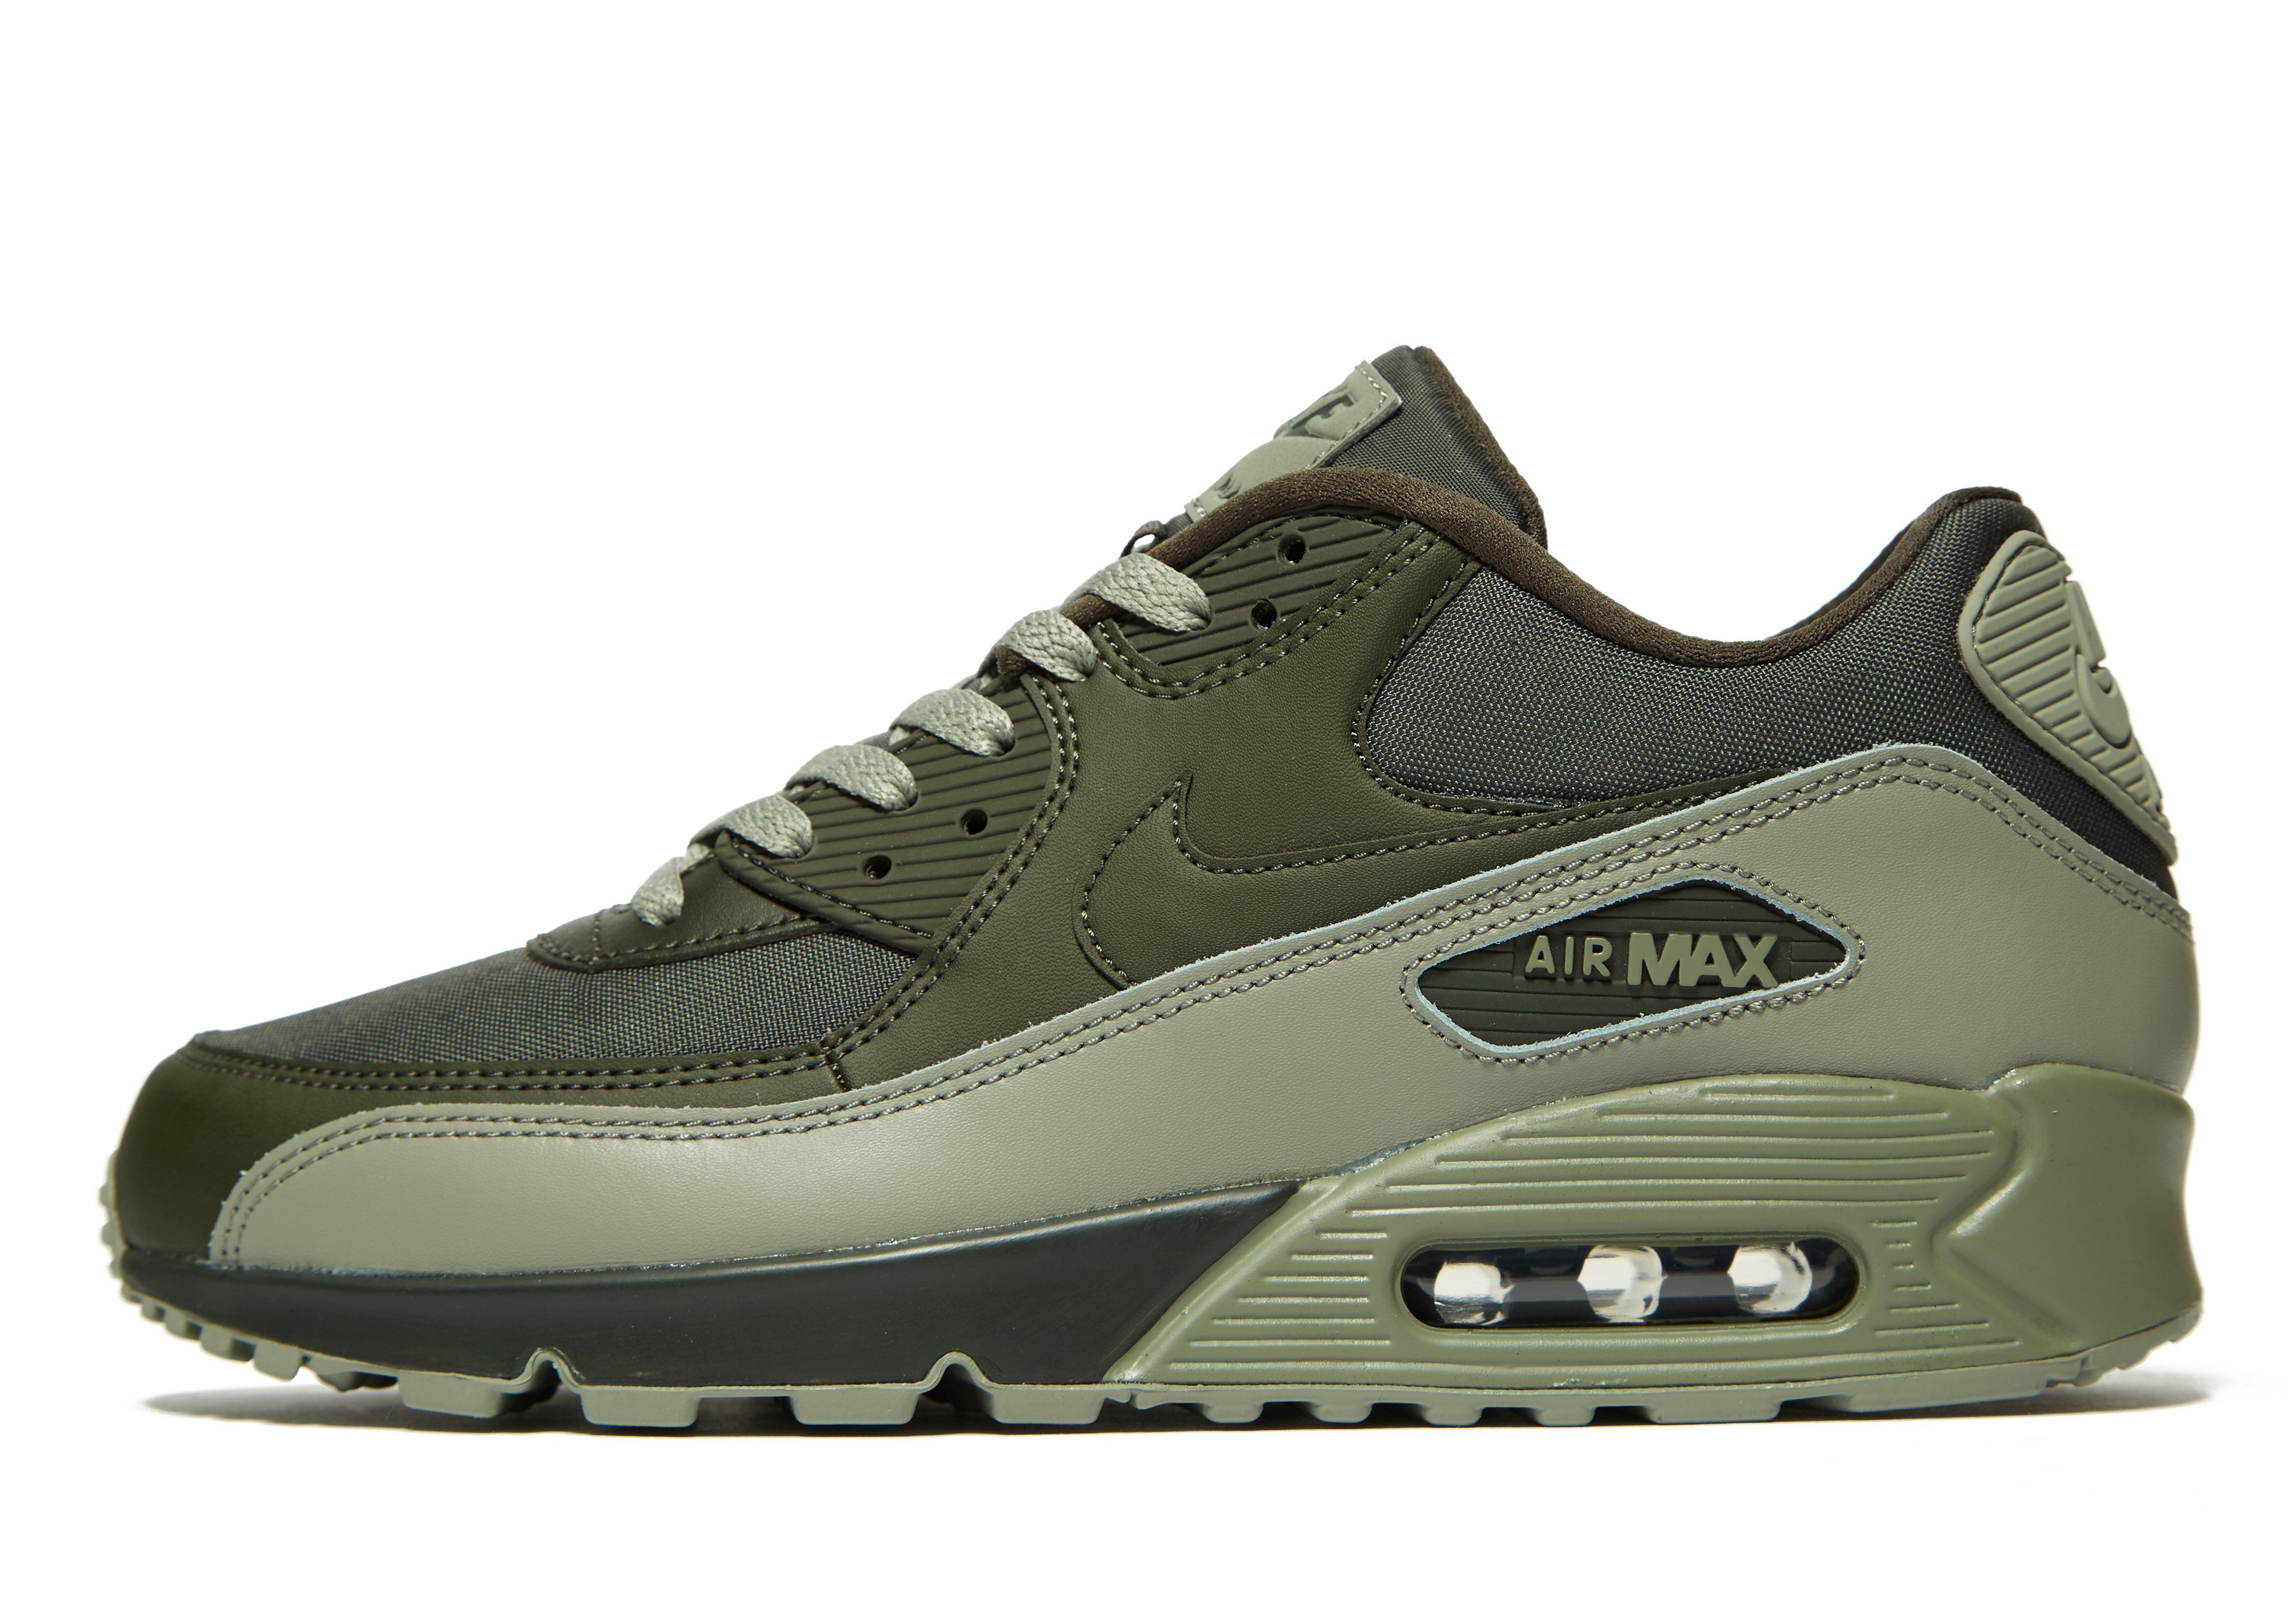 nike air max 90 jd sports. Black Bedroom Furniture Sets. Home Design Ideas